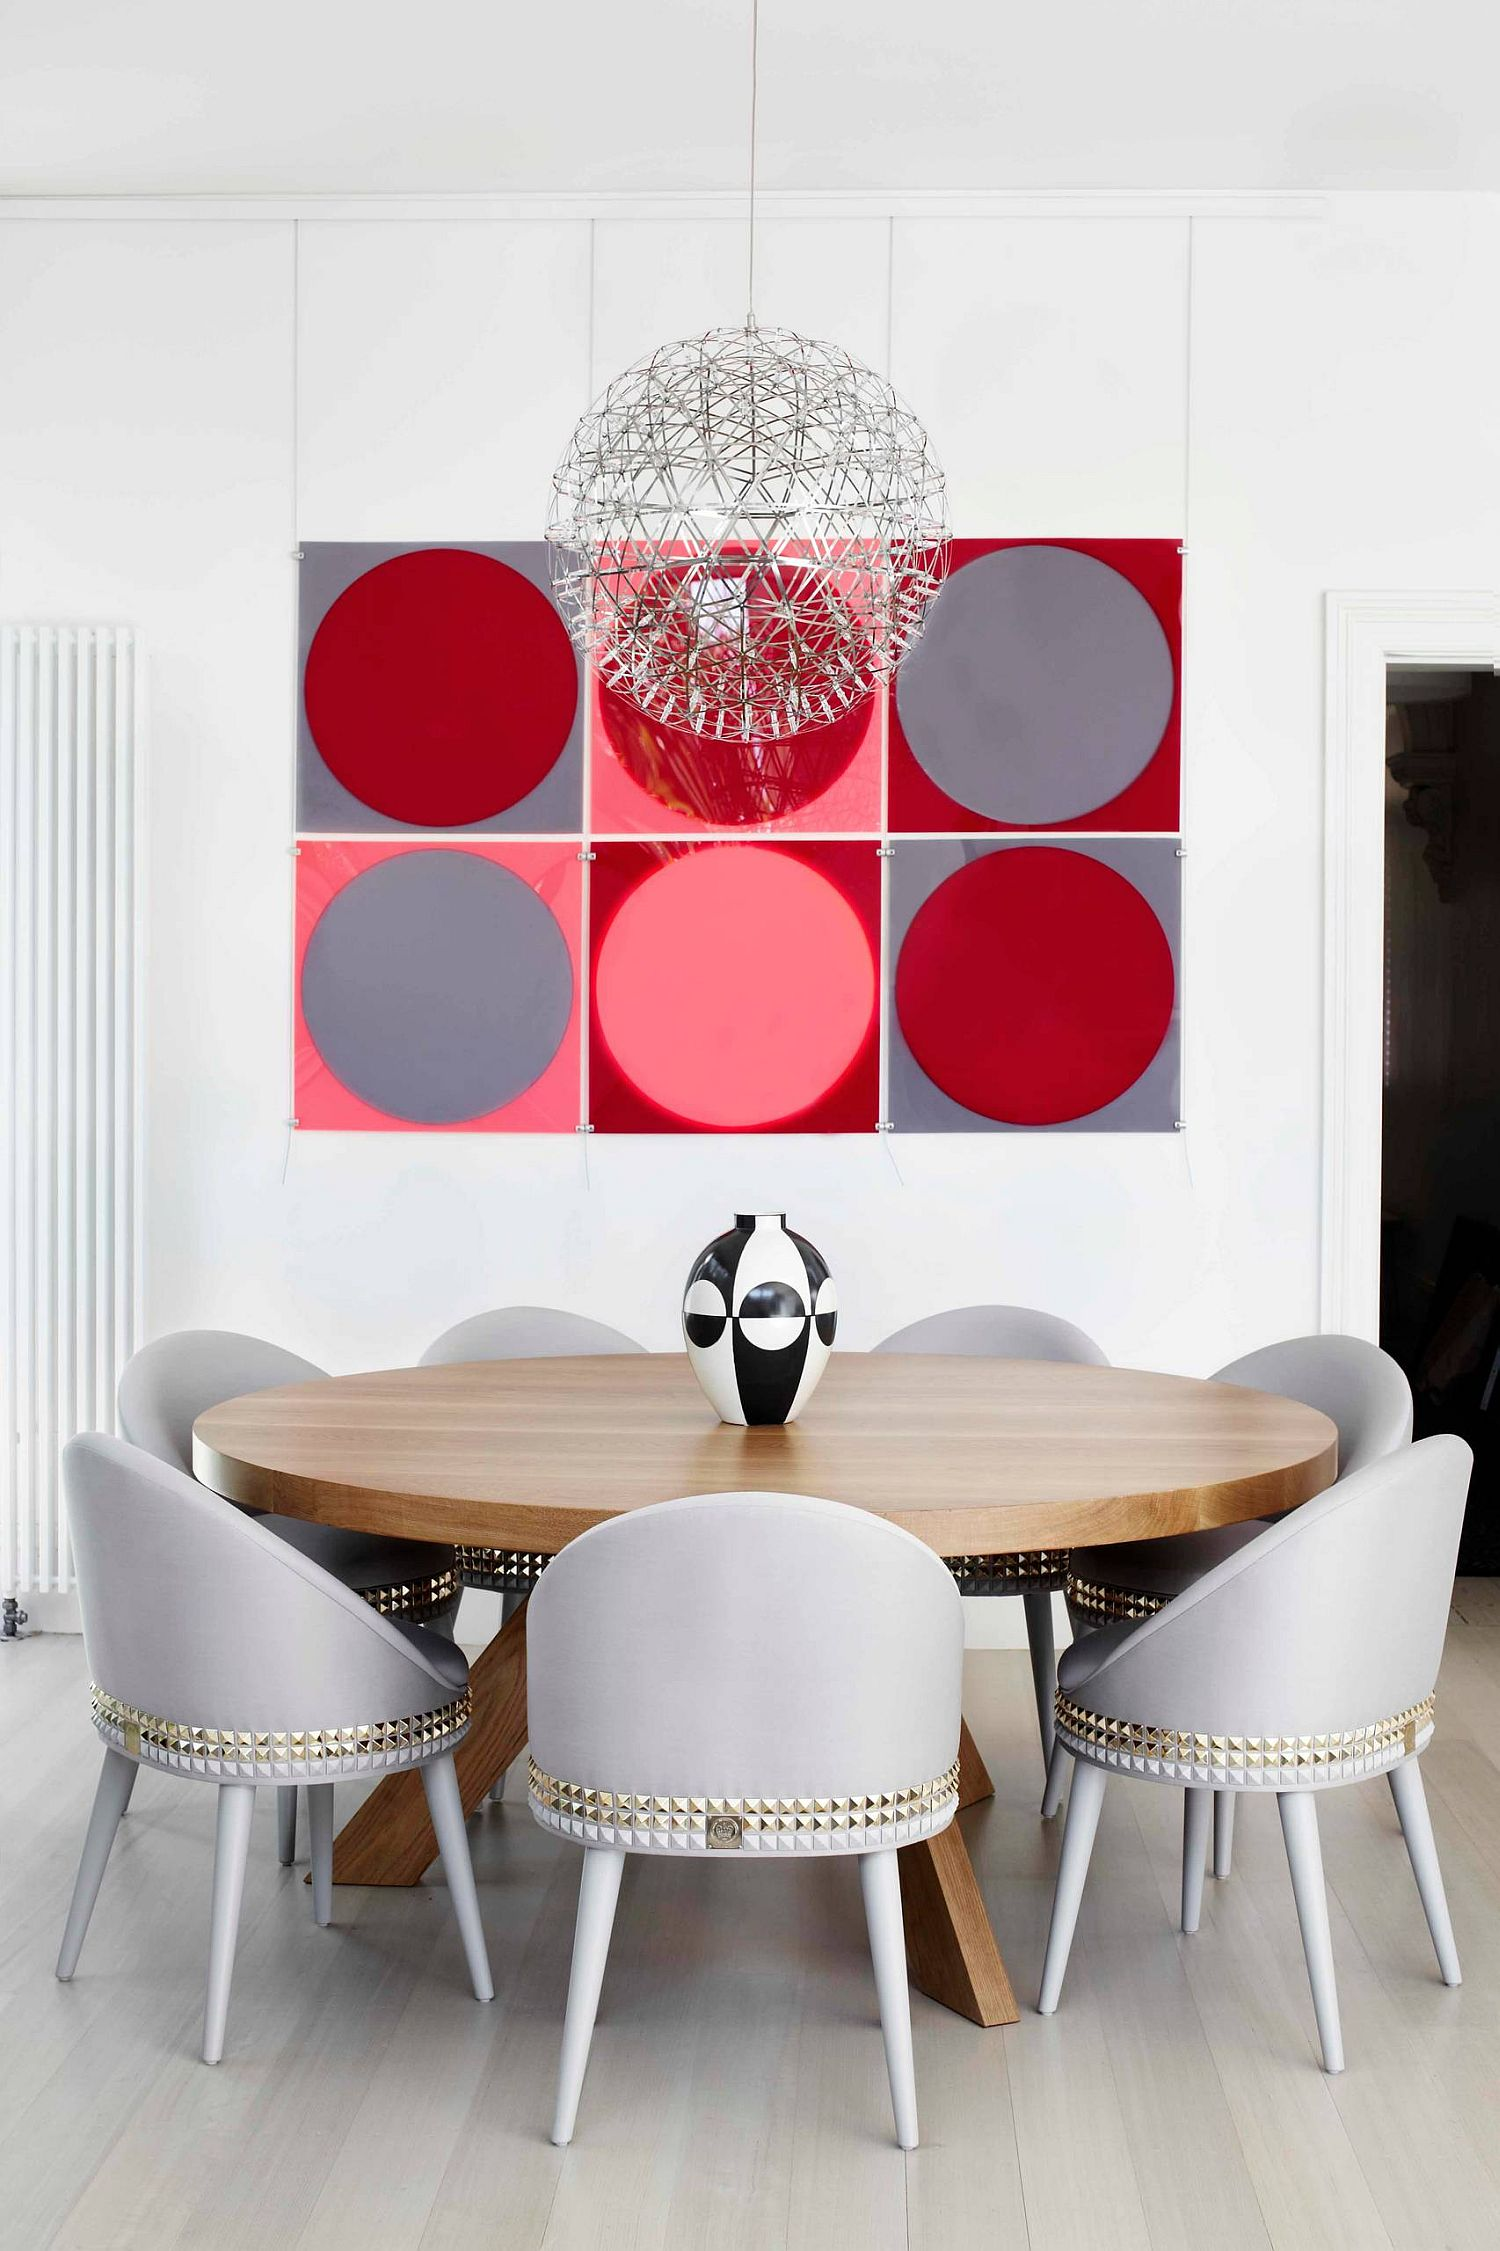 It is the wall art that adds color to this contemporary dining room